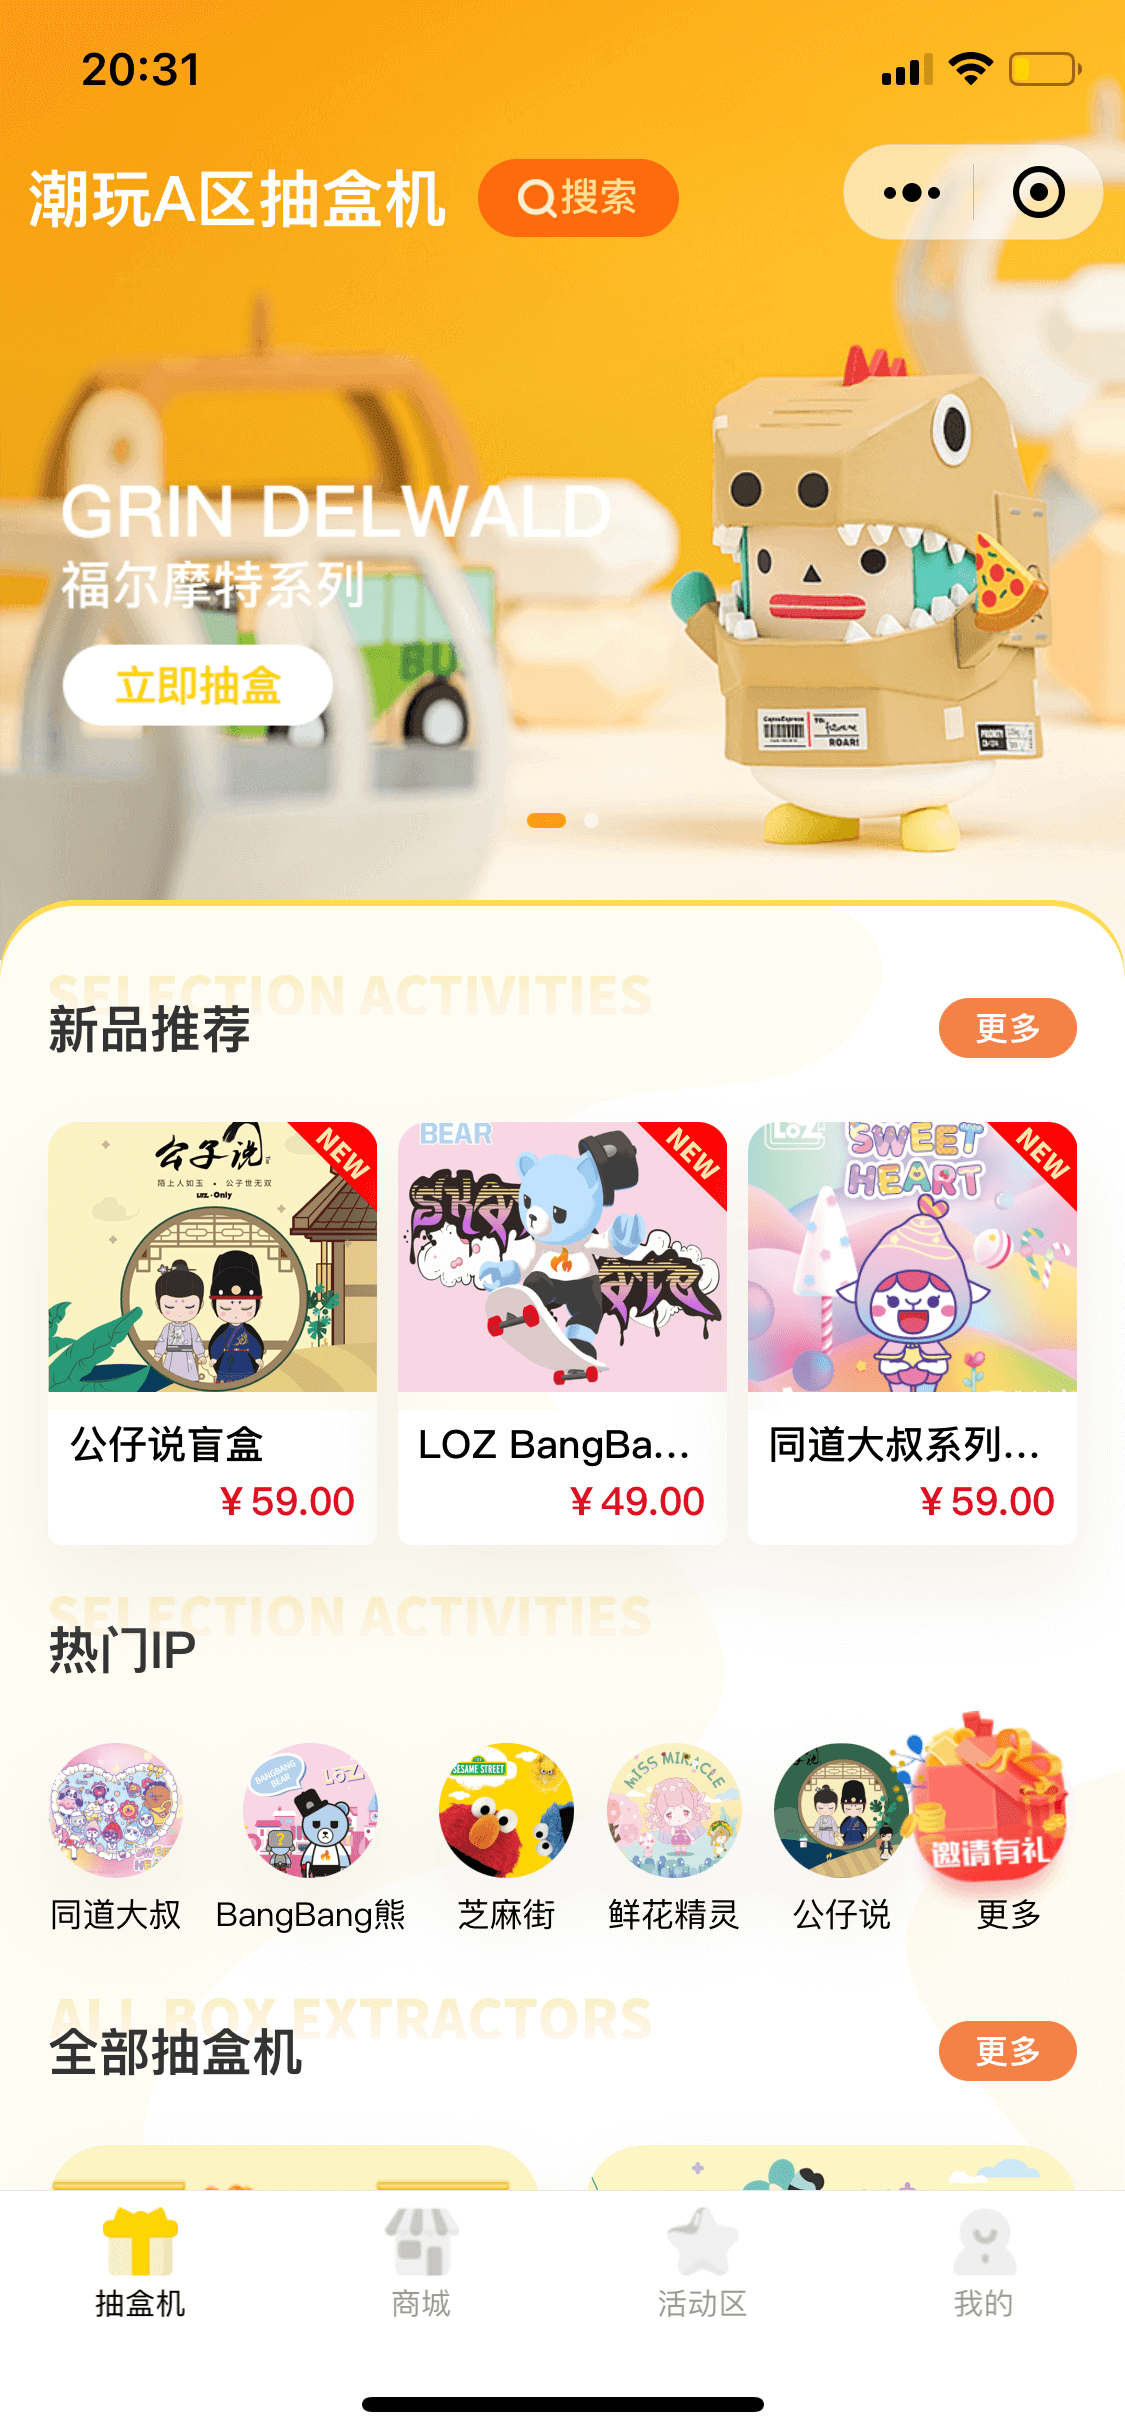 Latest Products Image